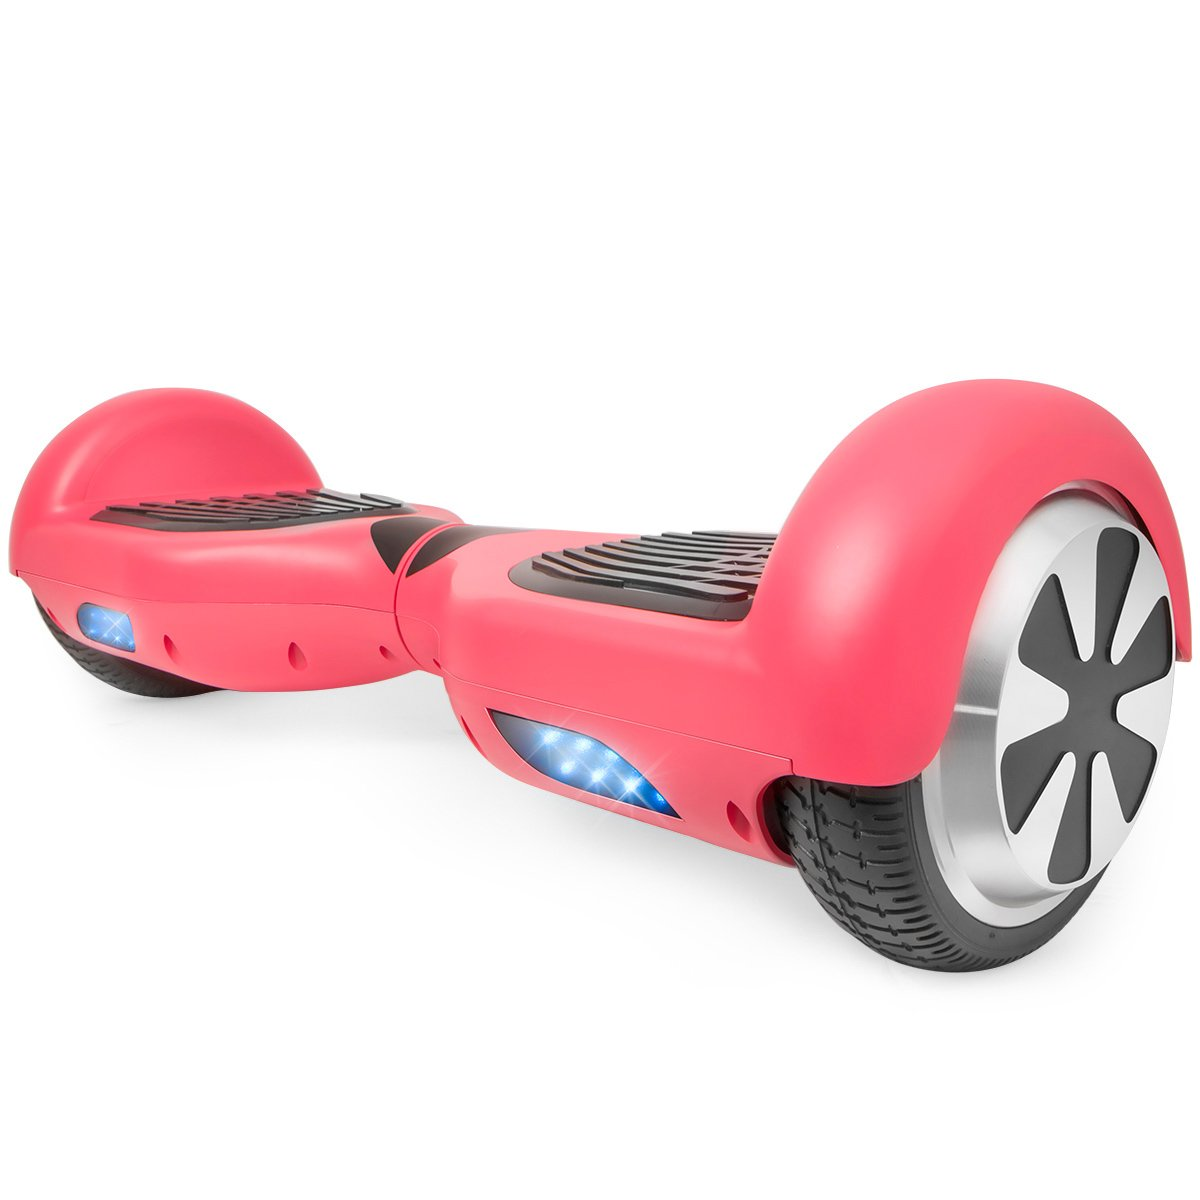 XtremepowerUS 6.5'' Self Balancing Hoverboard Scooter w/ Bluetooth Speaker (Matte Pink) by XtremepowerUS